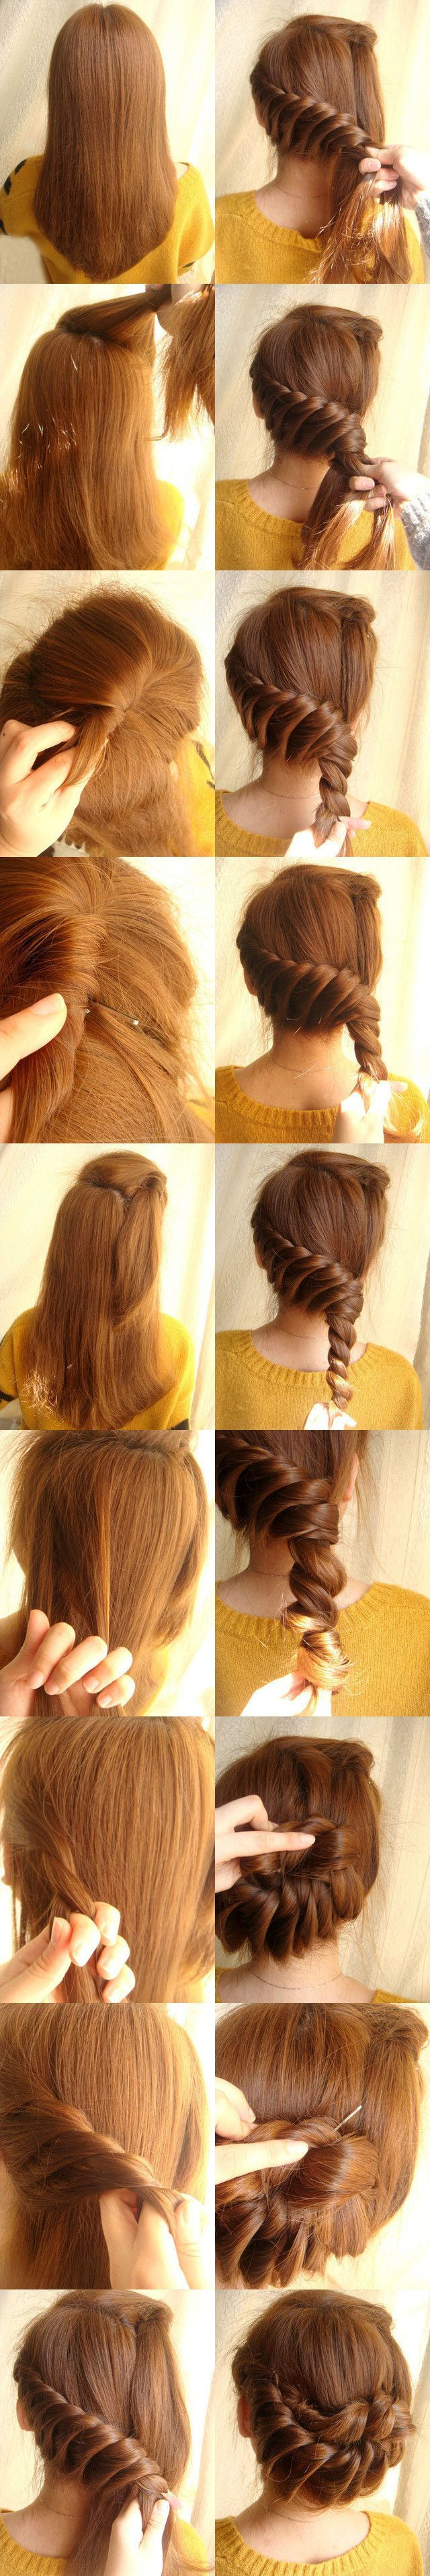 Who knew twisting your hair could look so cool? / #updo #hair